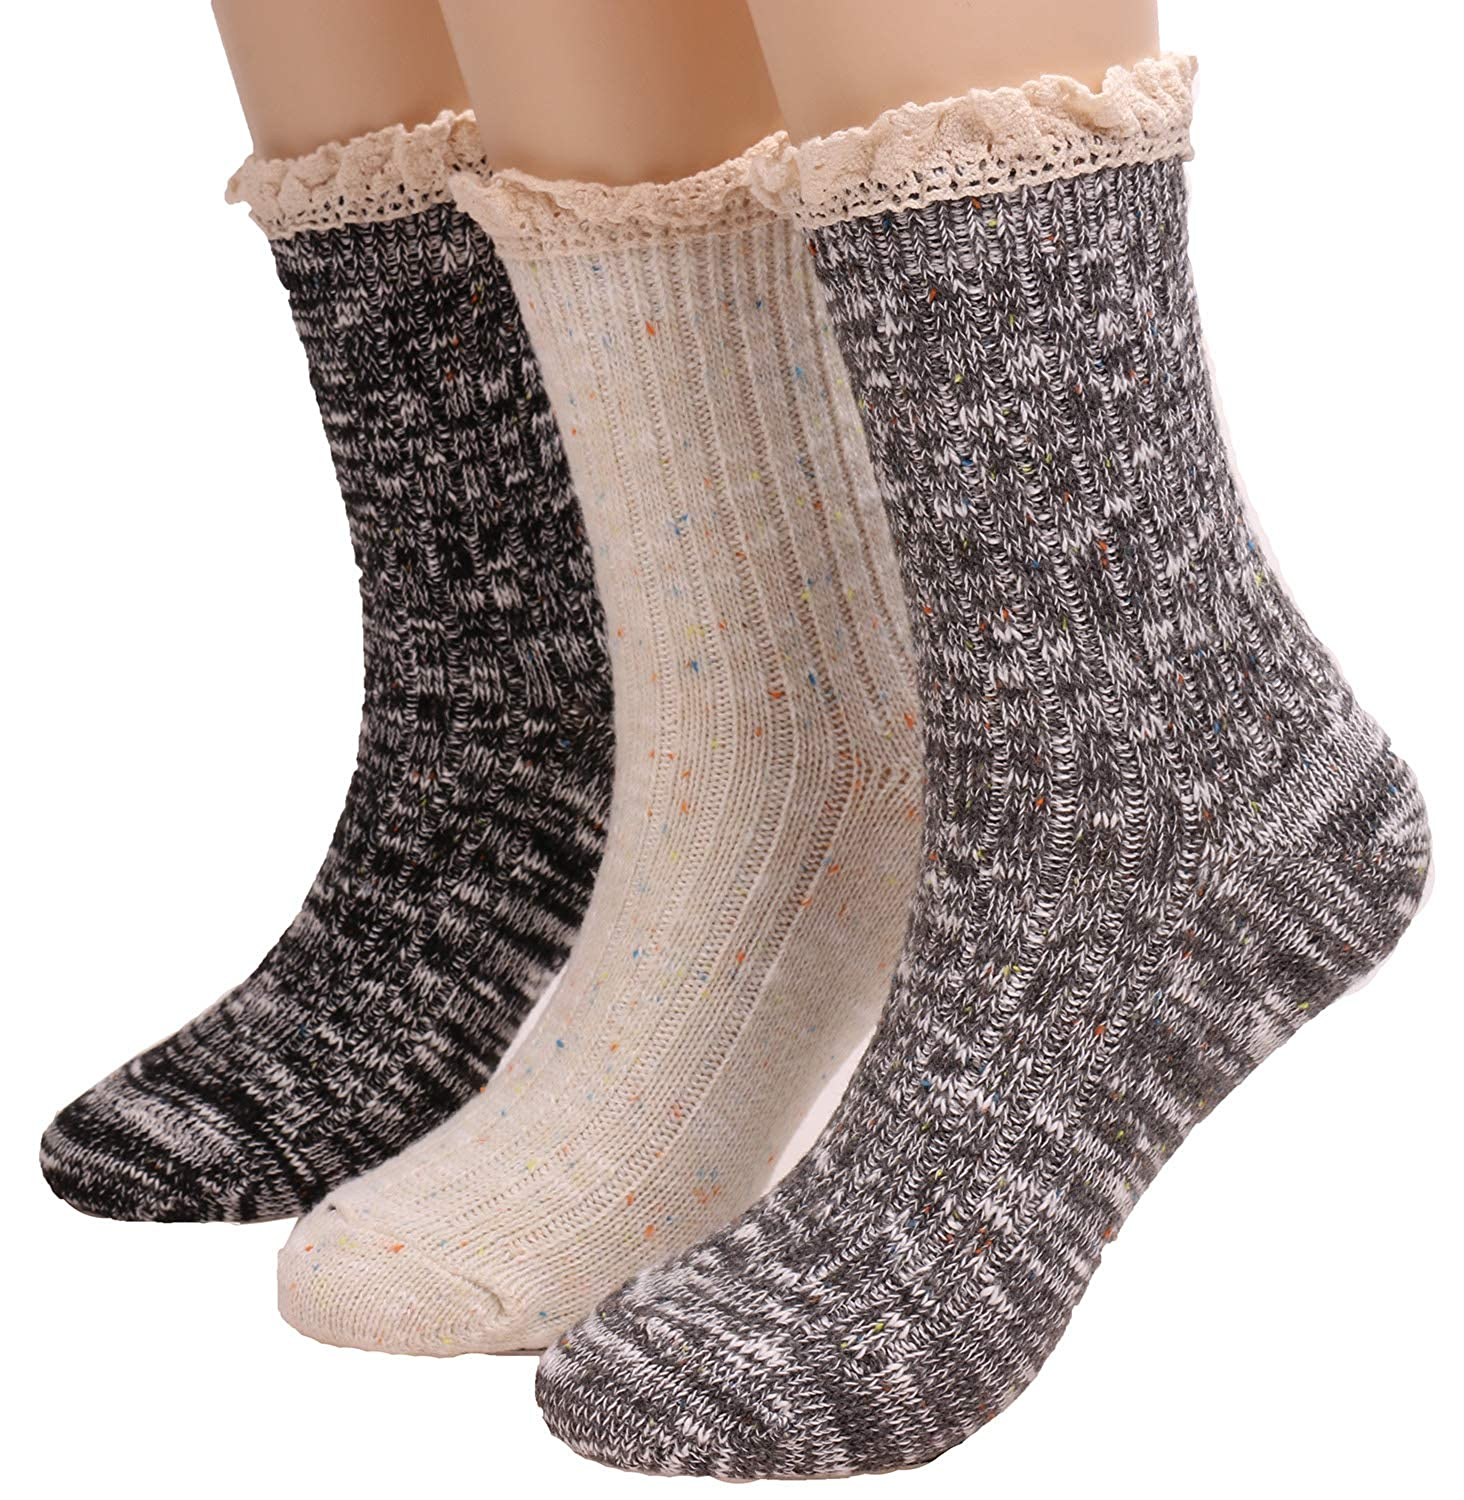 90ebccf57f52 3 Pairs Womens Thick Warm Cotton Knit Boot Socks With Lace Trim W29 ...